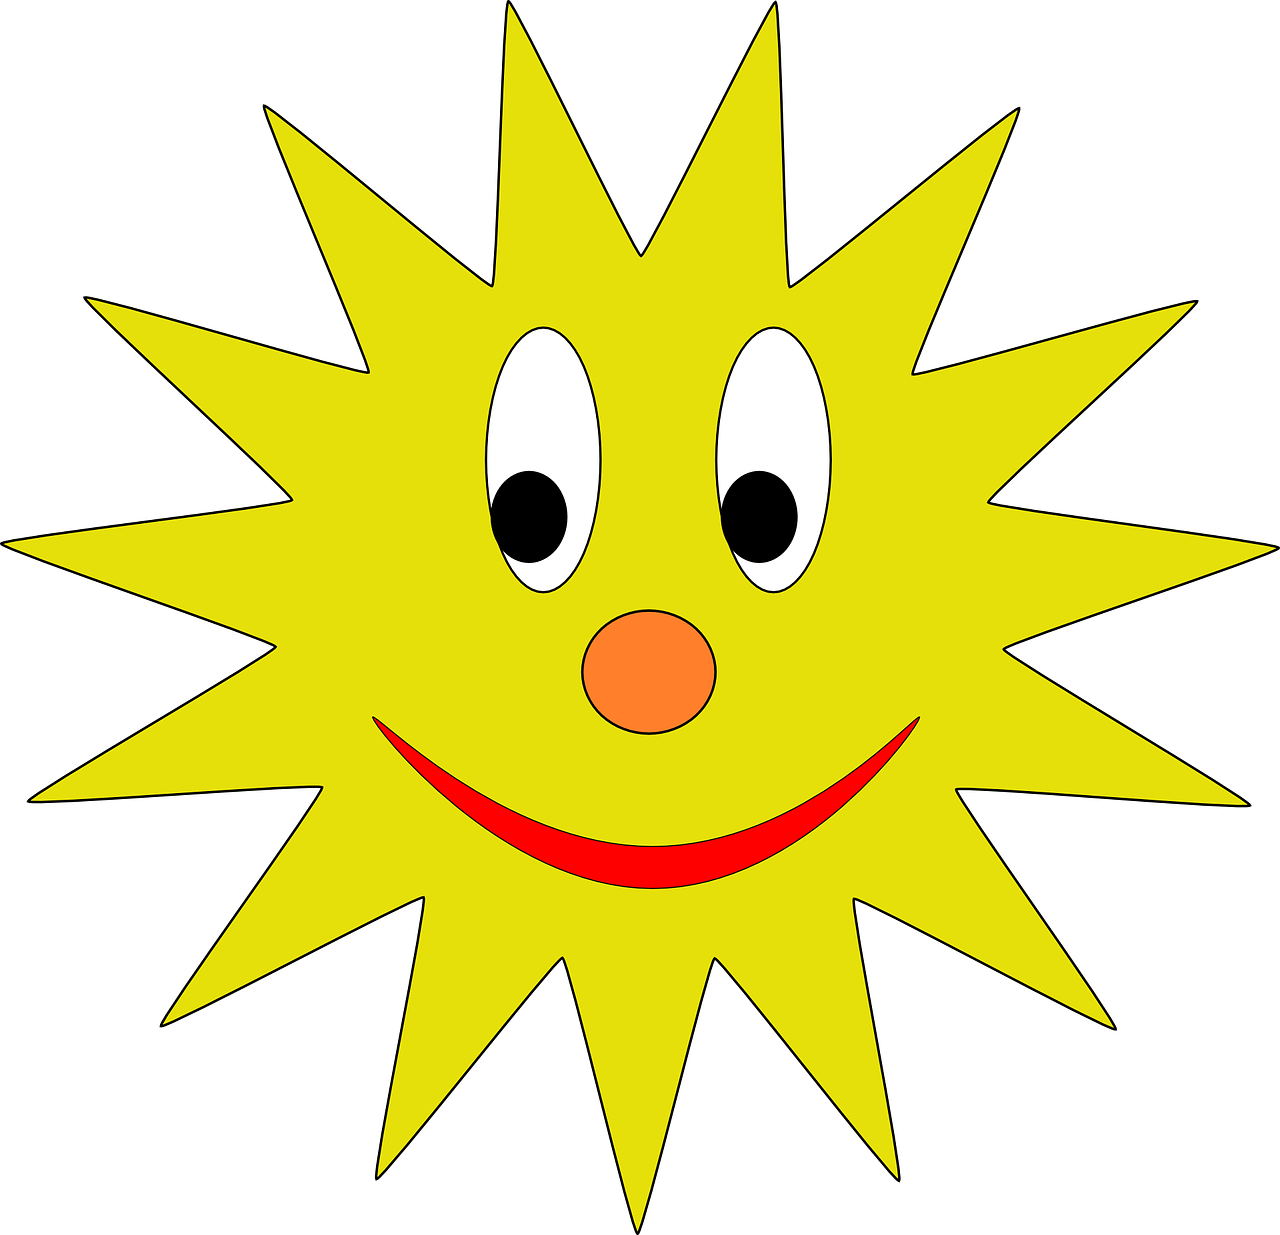 sun smiley smiling free photo